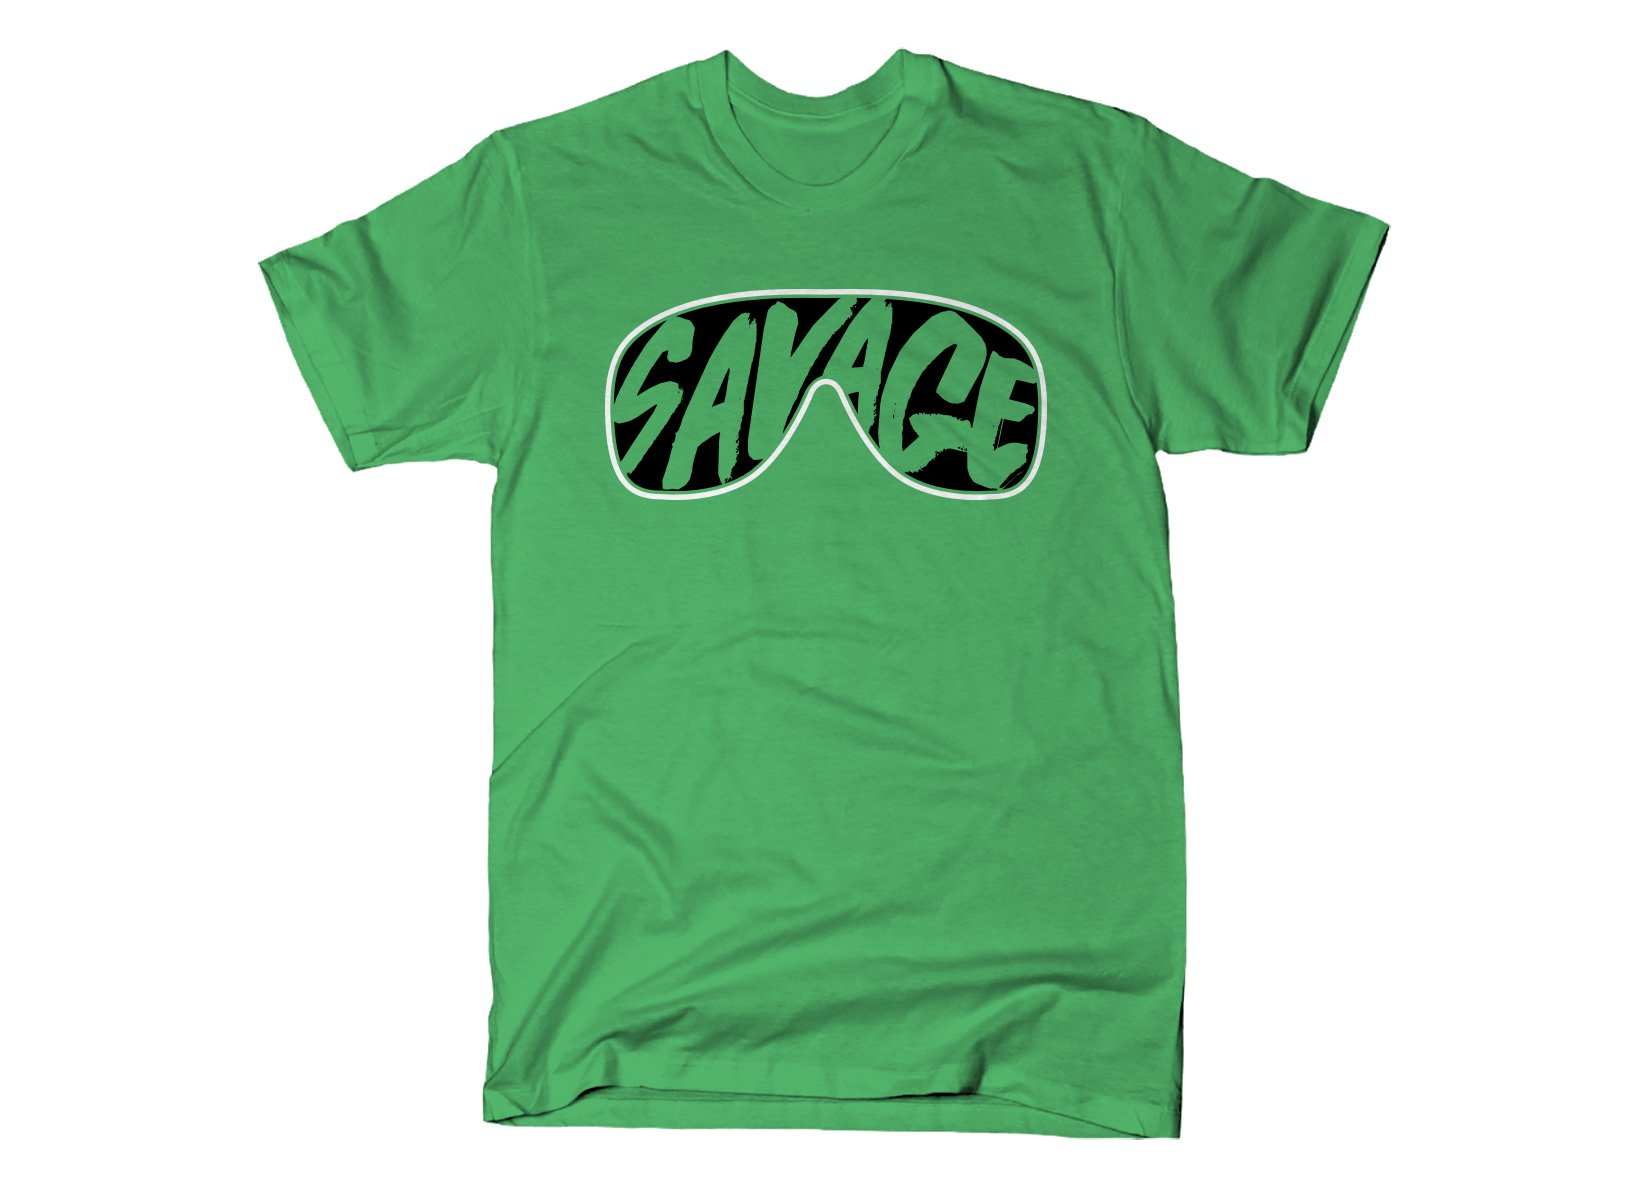 Savage Glasses on Mens T-Shirt